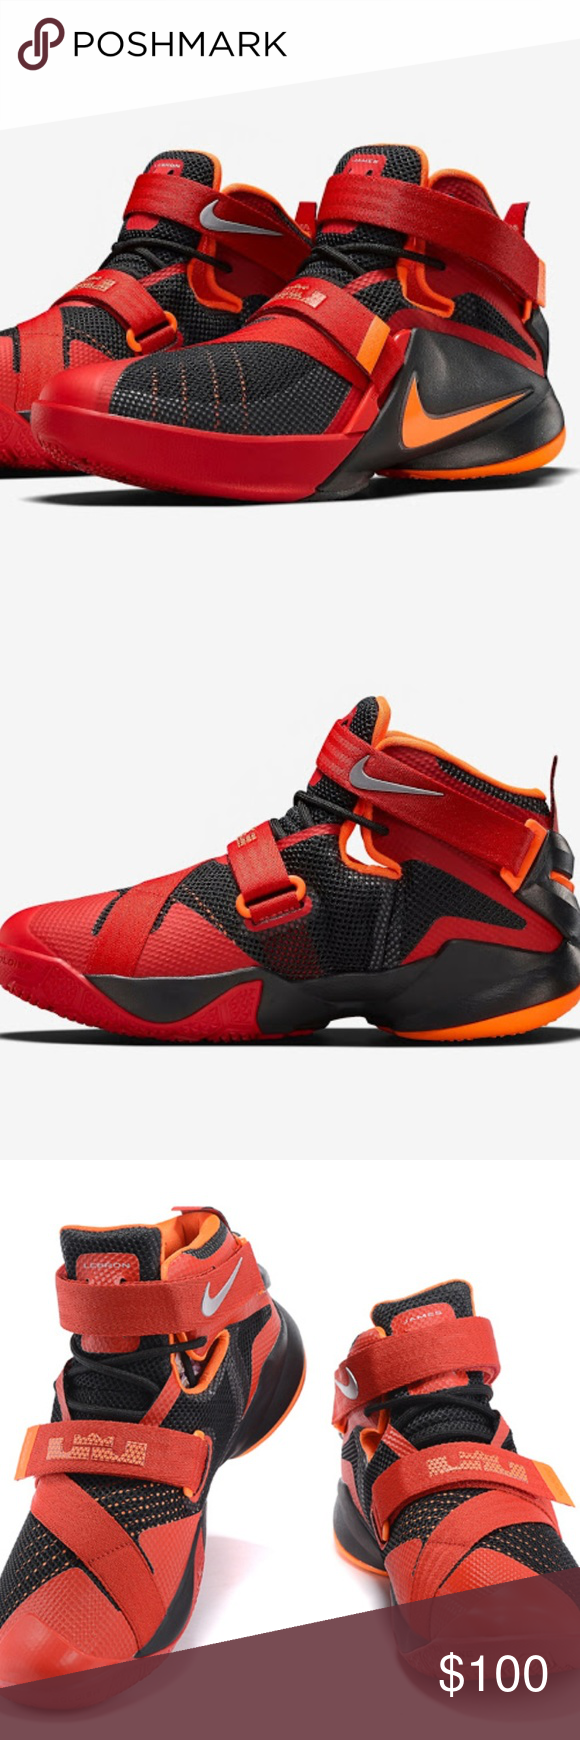 138fed23ab24 ... uk nike lebron soldier 9 black red orange preloved nike lebron soldier 9  black red orange low cost ...